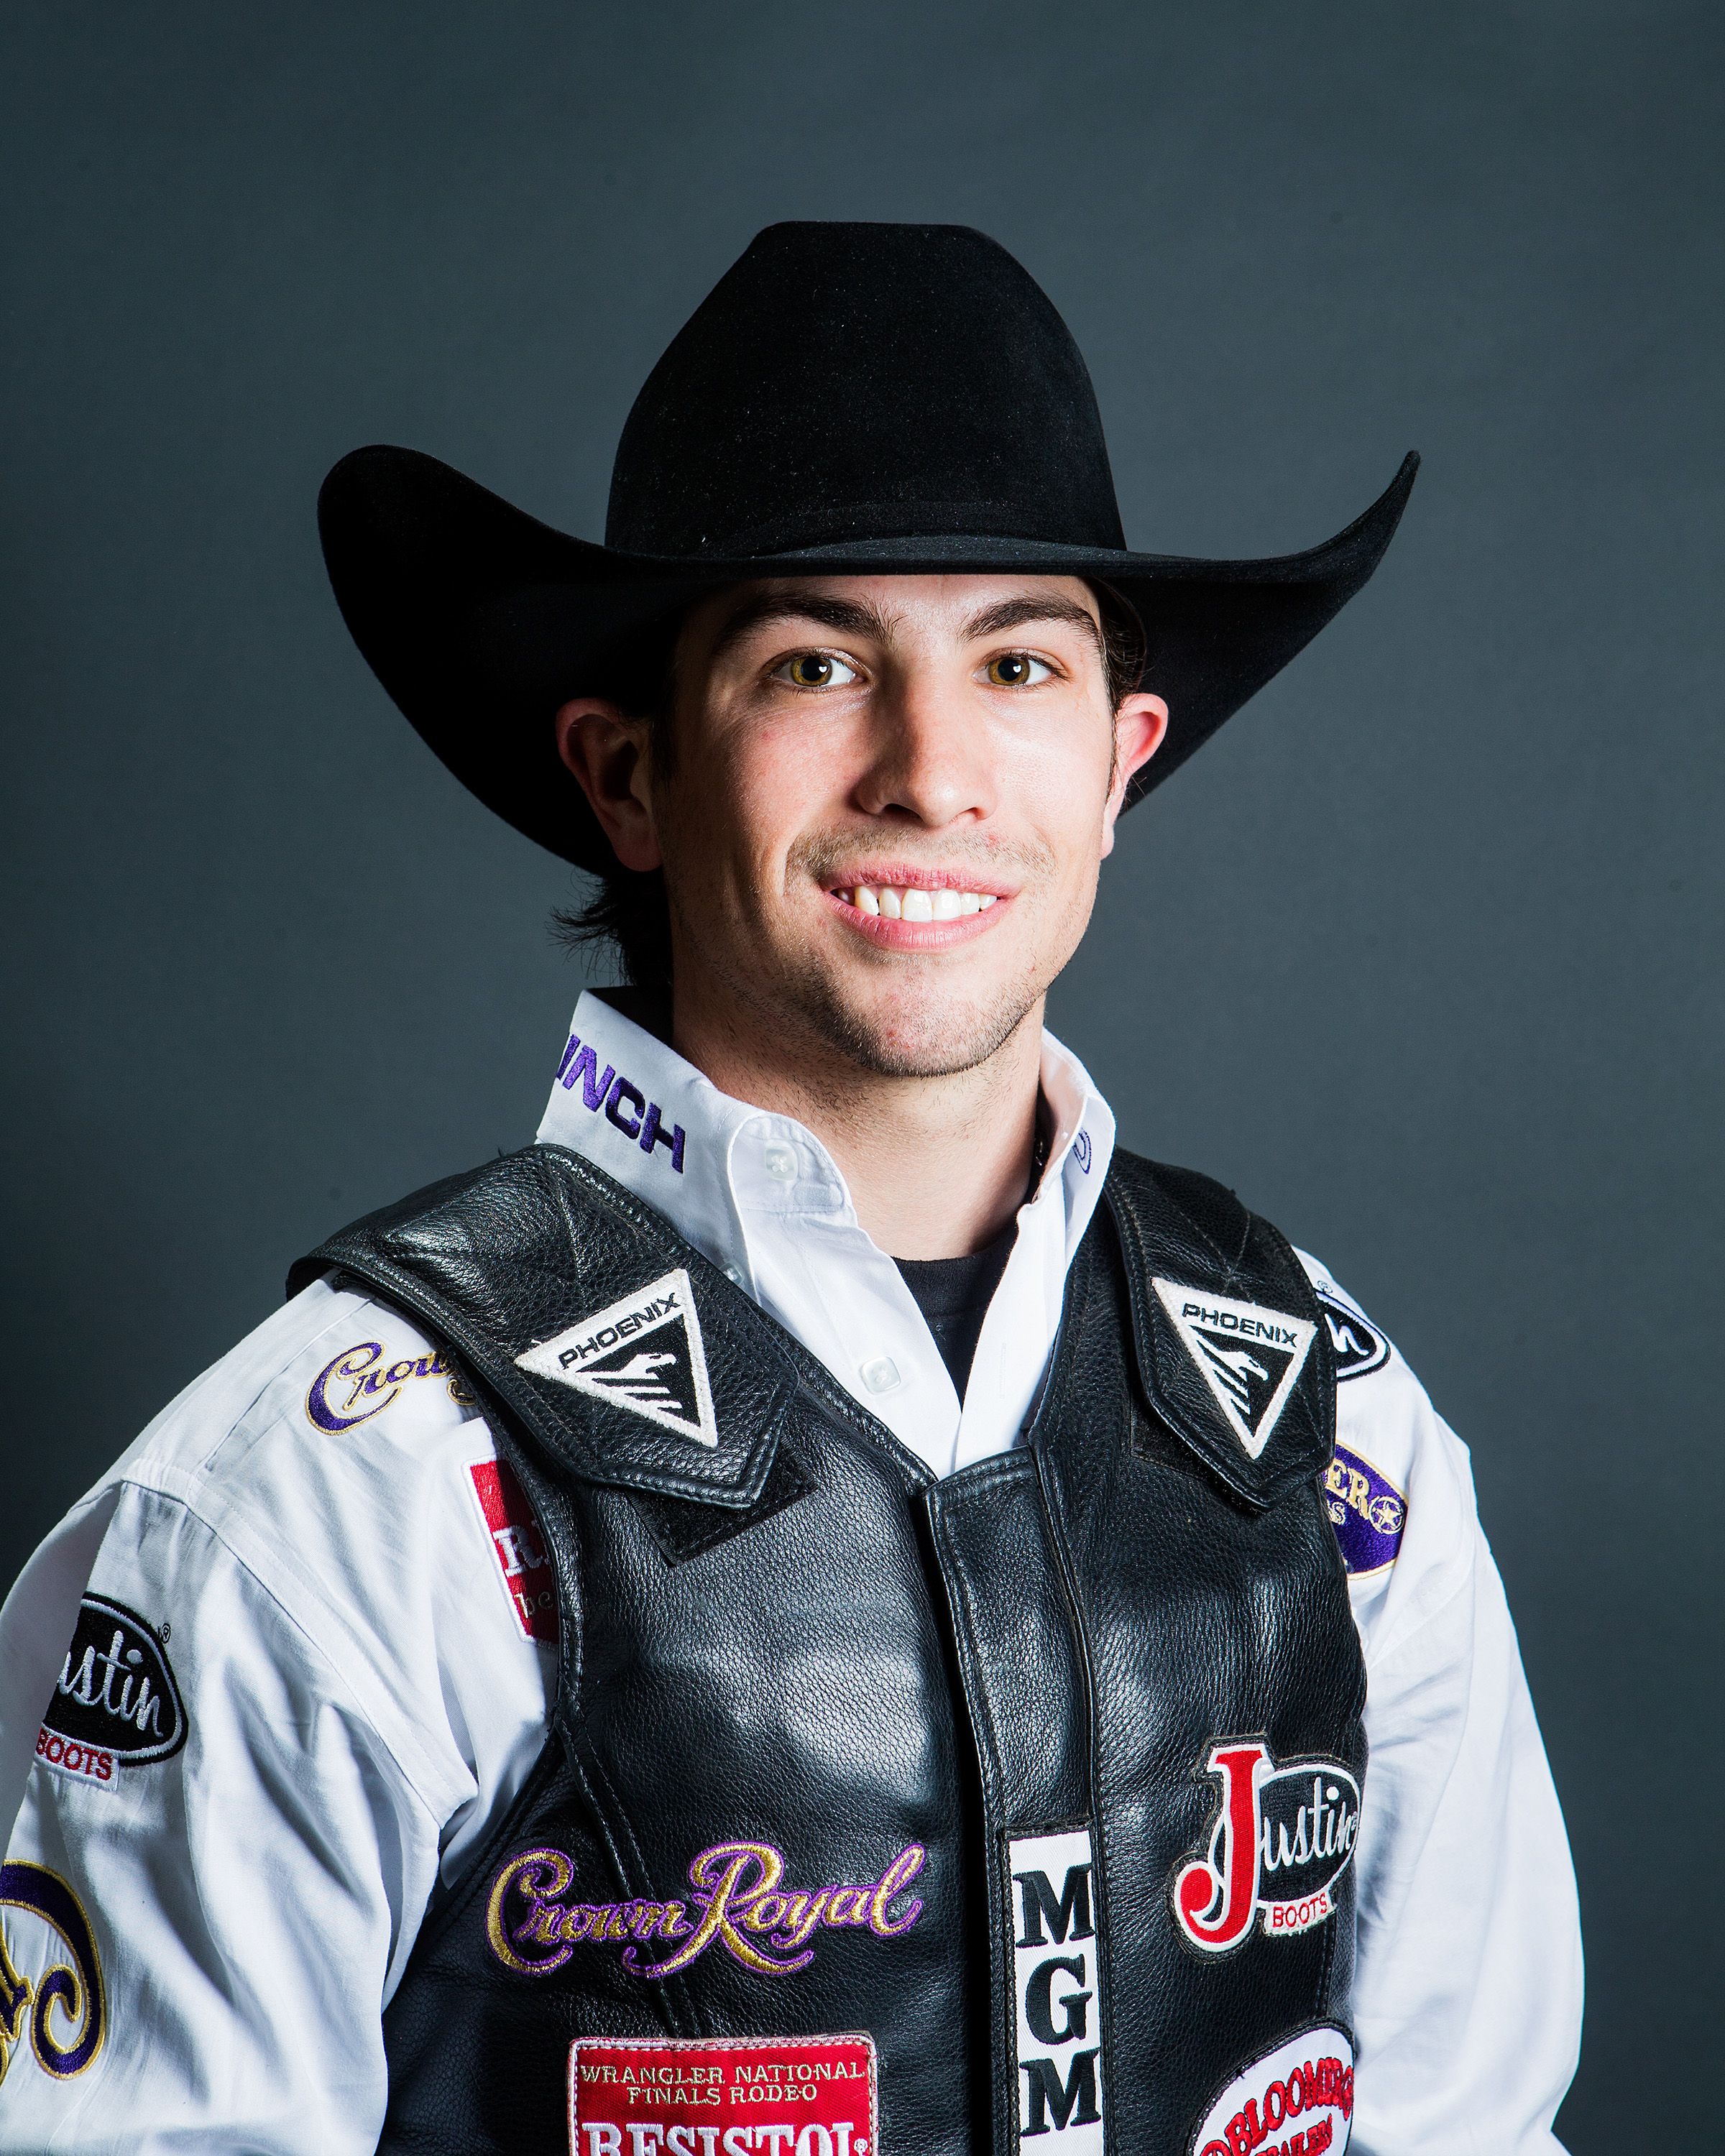 3-Time National Finals Rodeo Qualifier and reigning ERA World Champion bull rider Chandler Bownds returns to Tuff Hedeman Bull Riding action in Jacksonville.